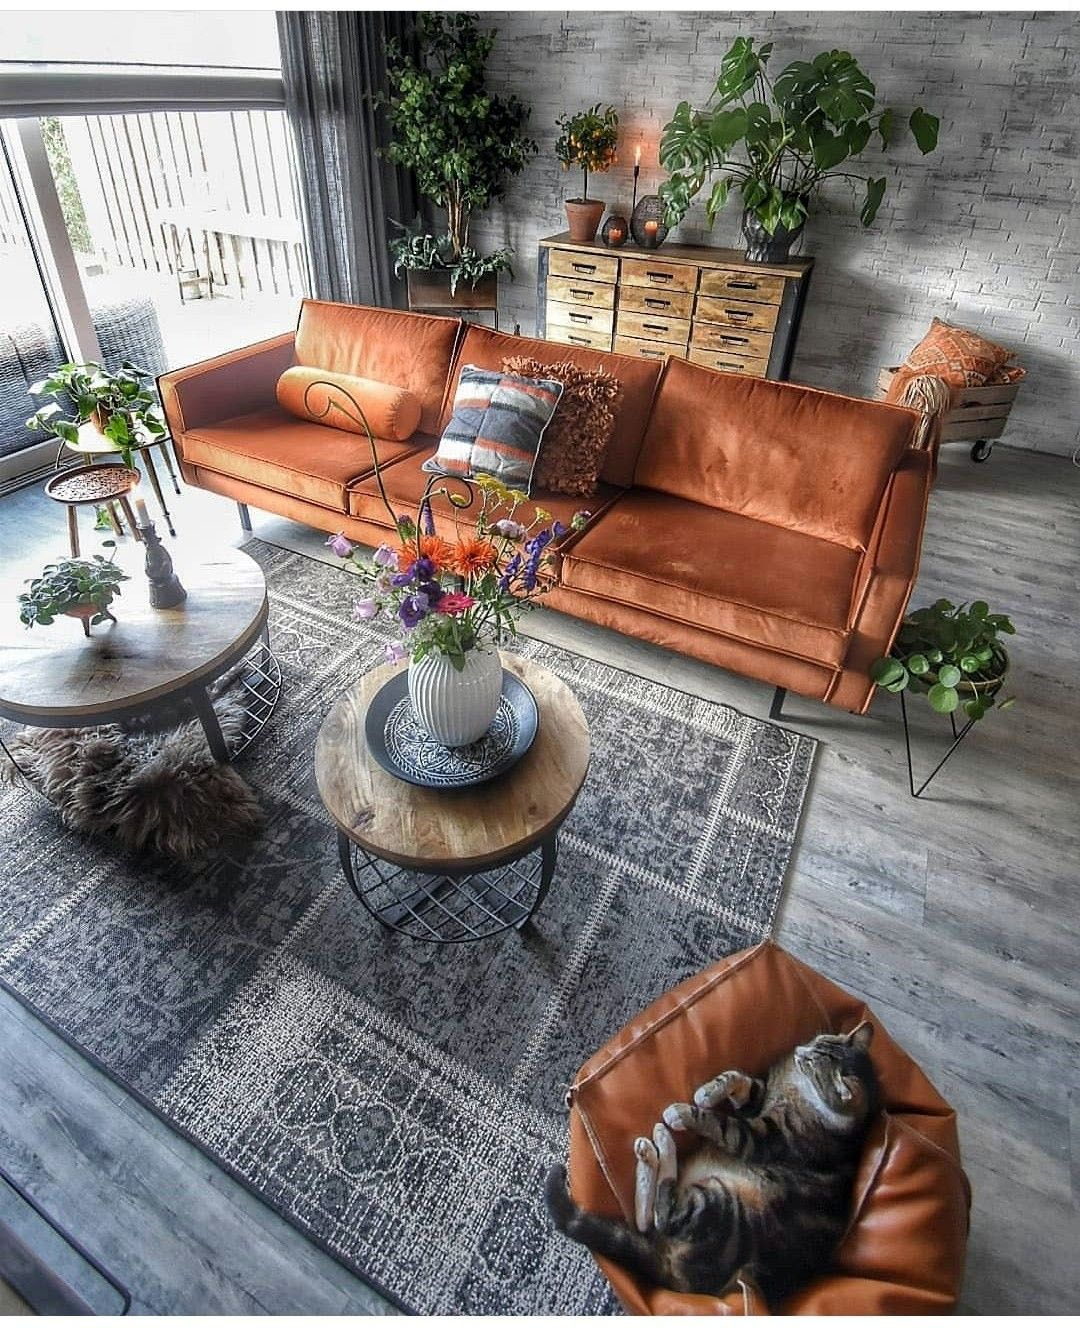 Cool And Contemporary Burnt Orange Living Room Furniture Made Easy Burnt Orange Living Room Decor Living Room Orange Orange Furniture Living Room